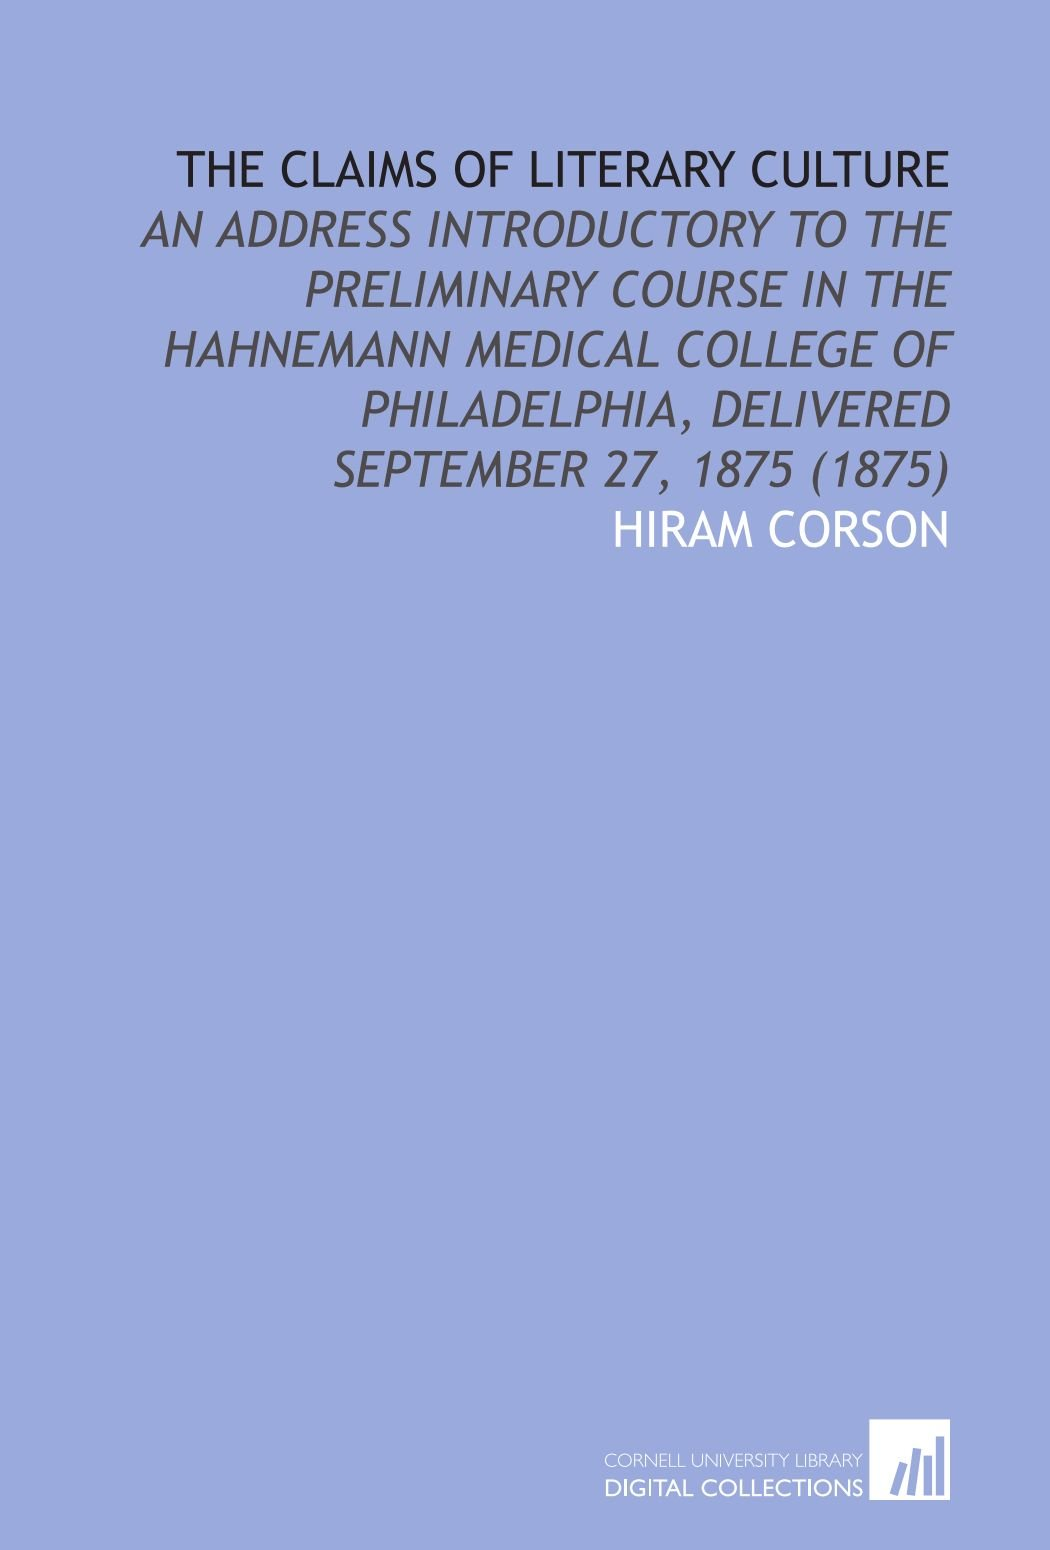 The Claims of Literary Culture: An Address Introductory to the Preliminary Course in the Hahnemann Medical College of Philadelphia, Delivered September 27, 1875 (1875) PDF